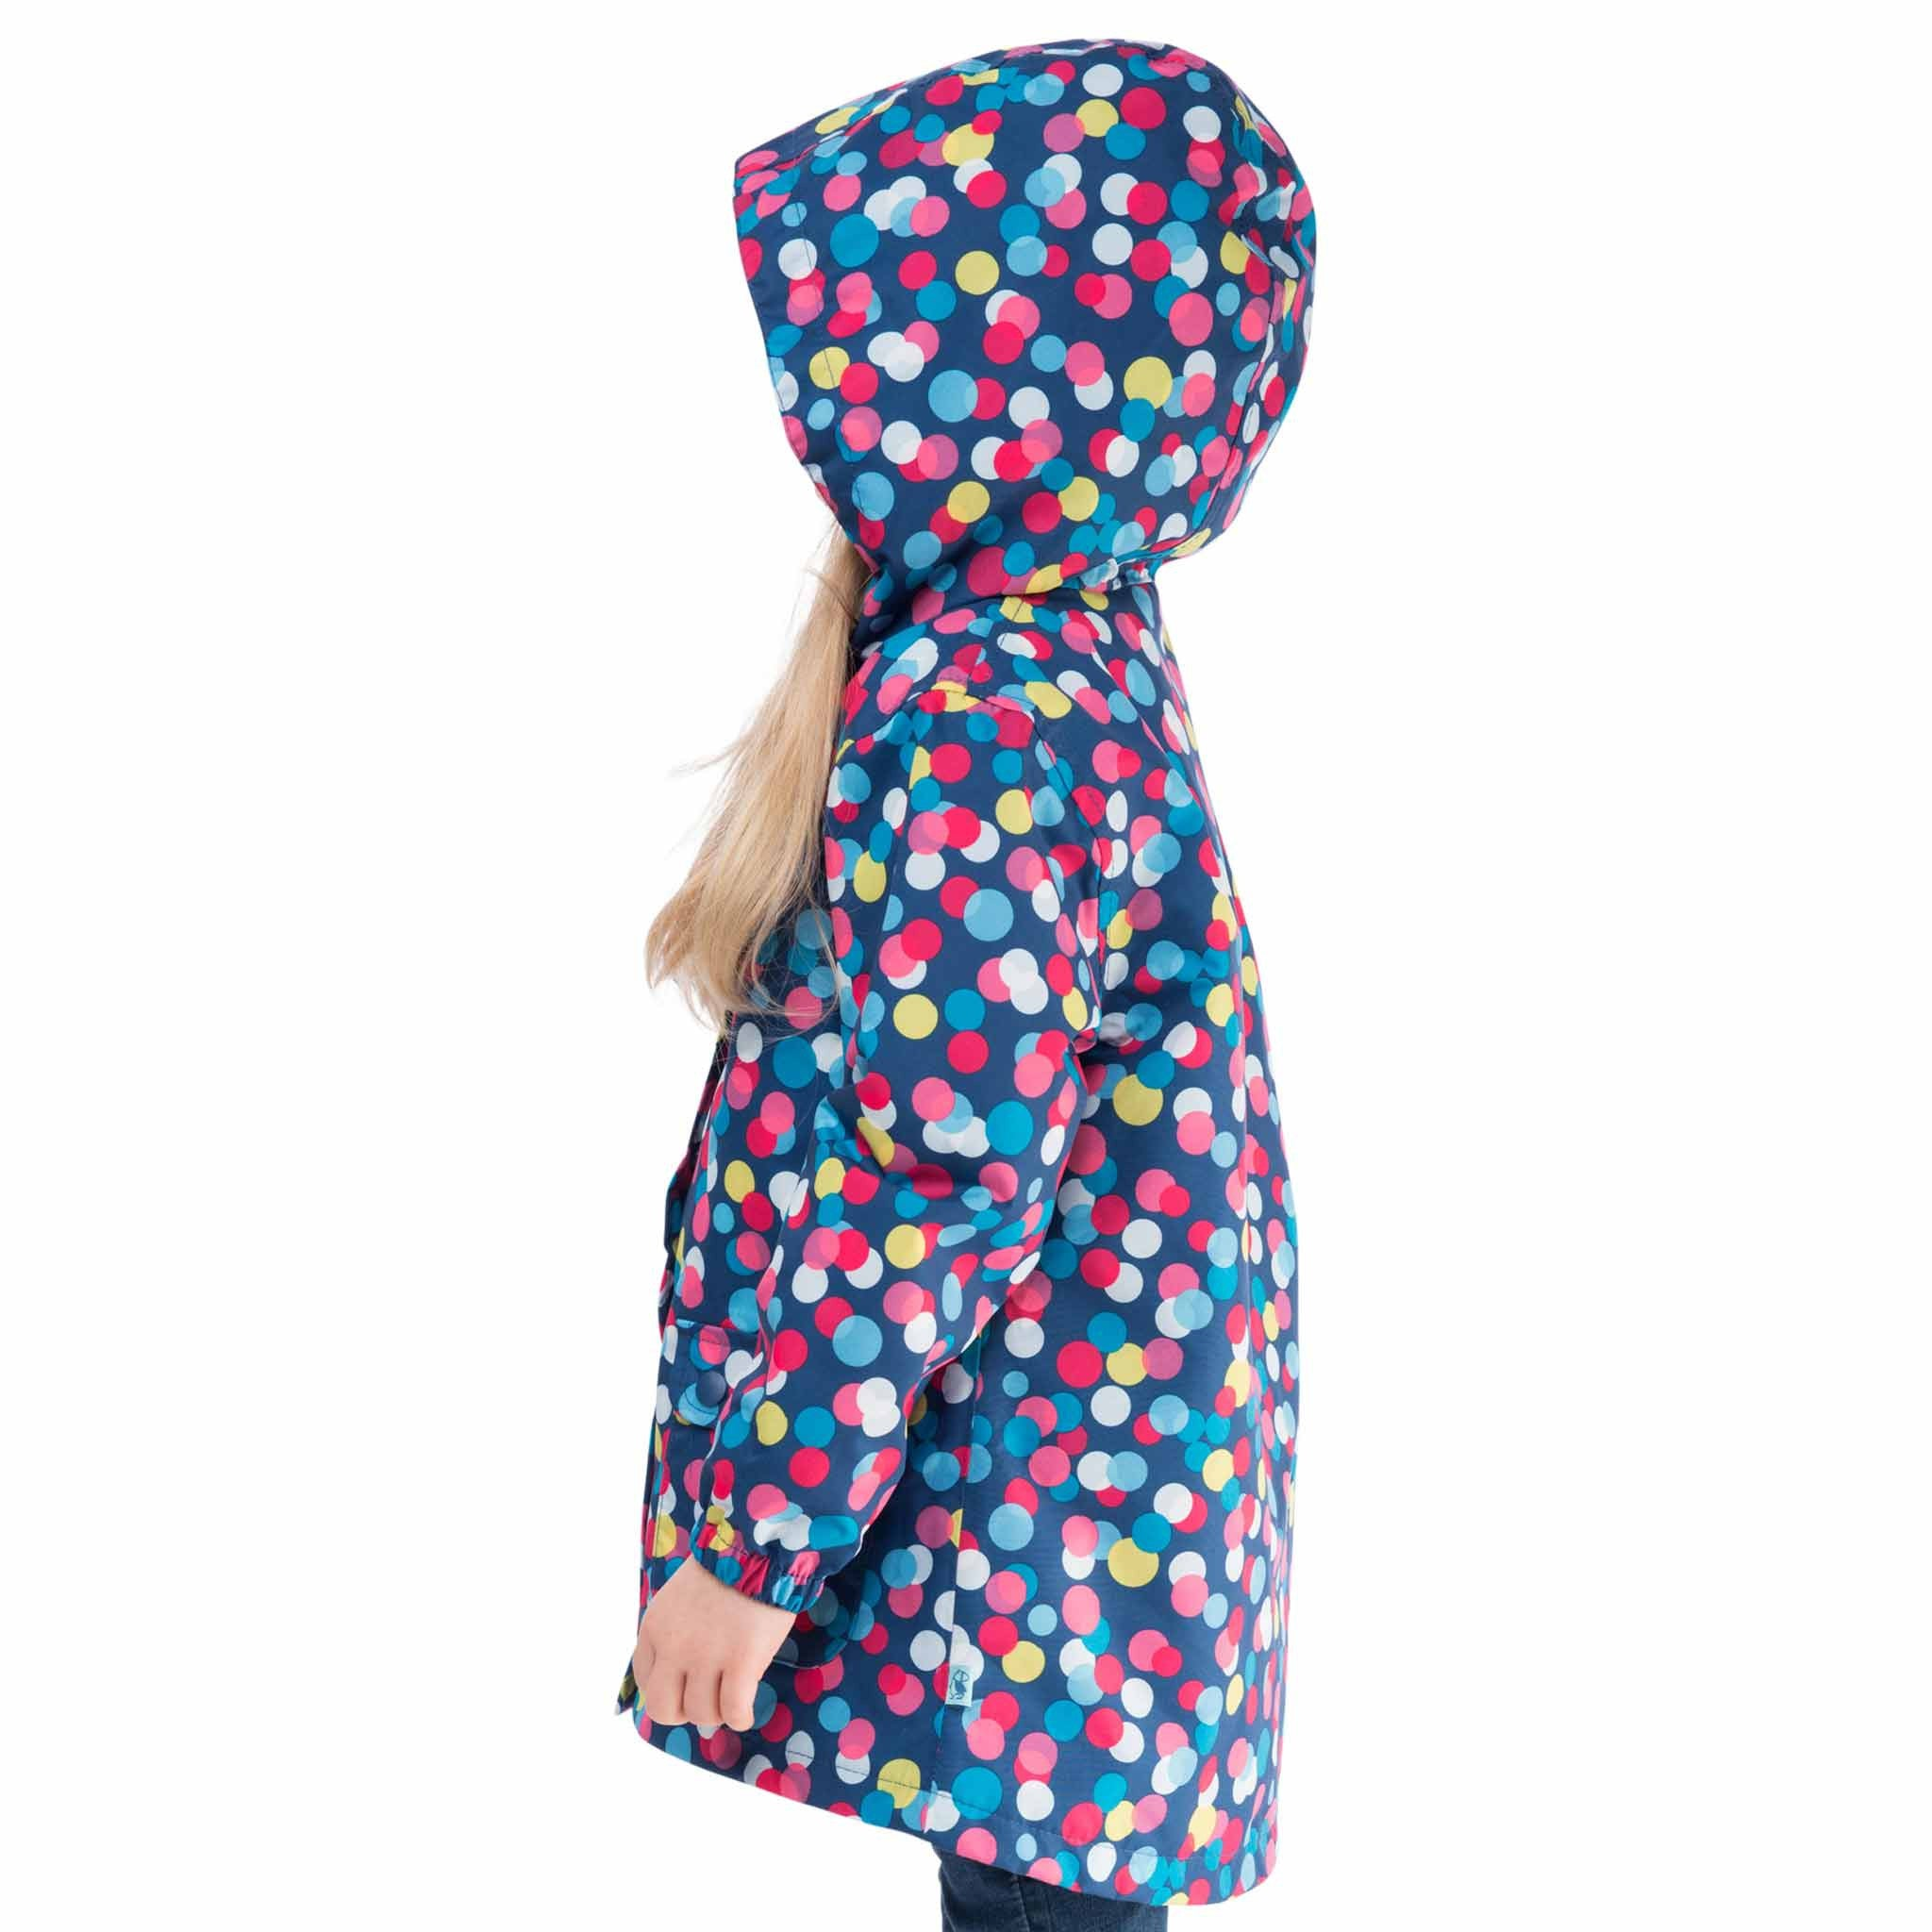 Carrie Girls Waterproof Hooded Jacket, in Washed Navy Polka Dot, Modelled Side View | Lighthouse